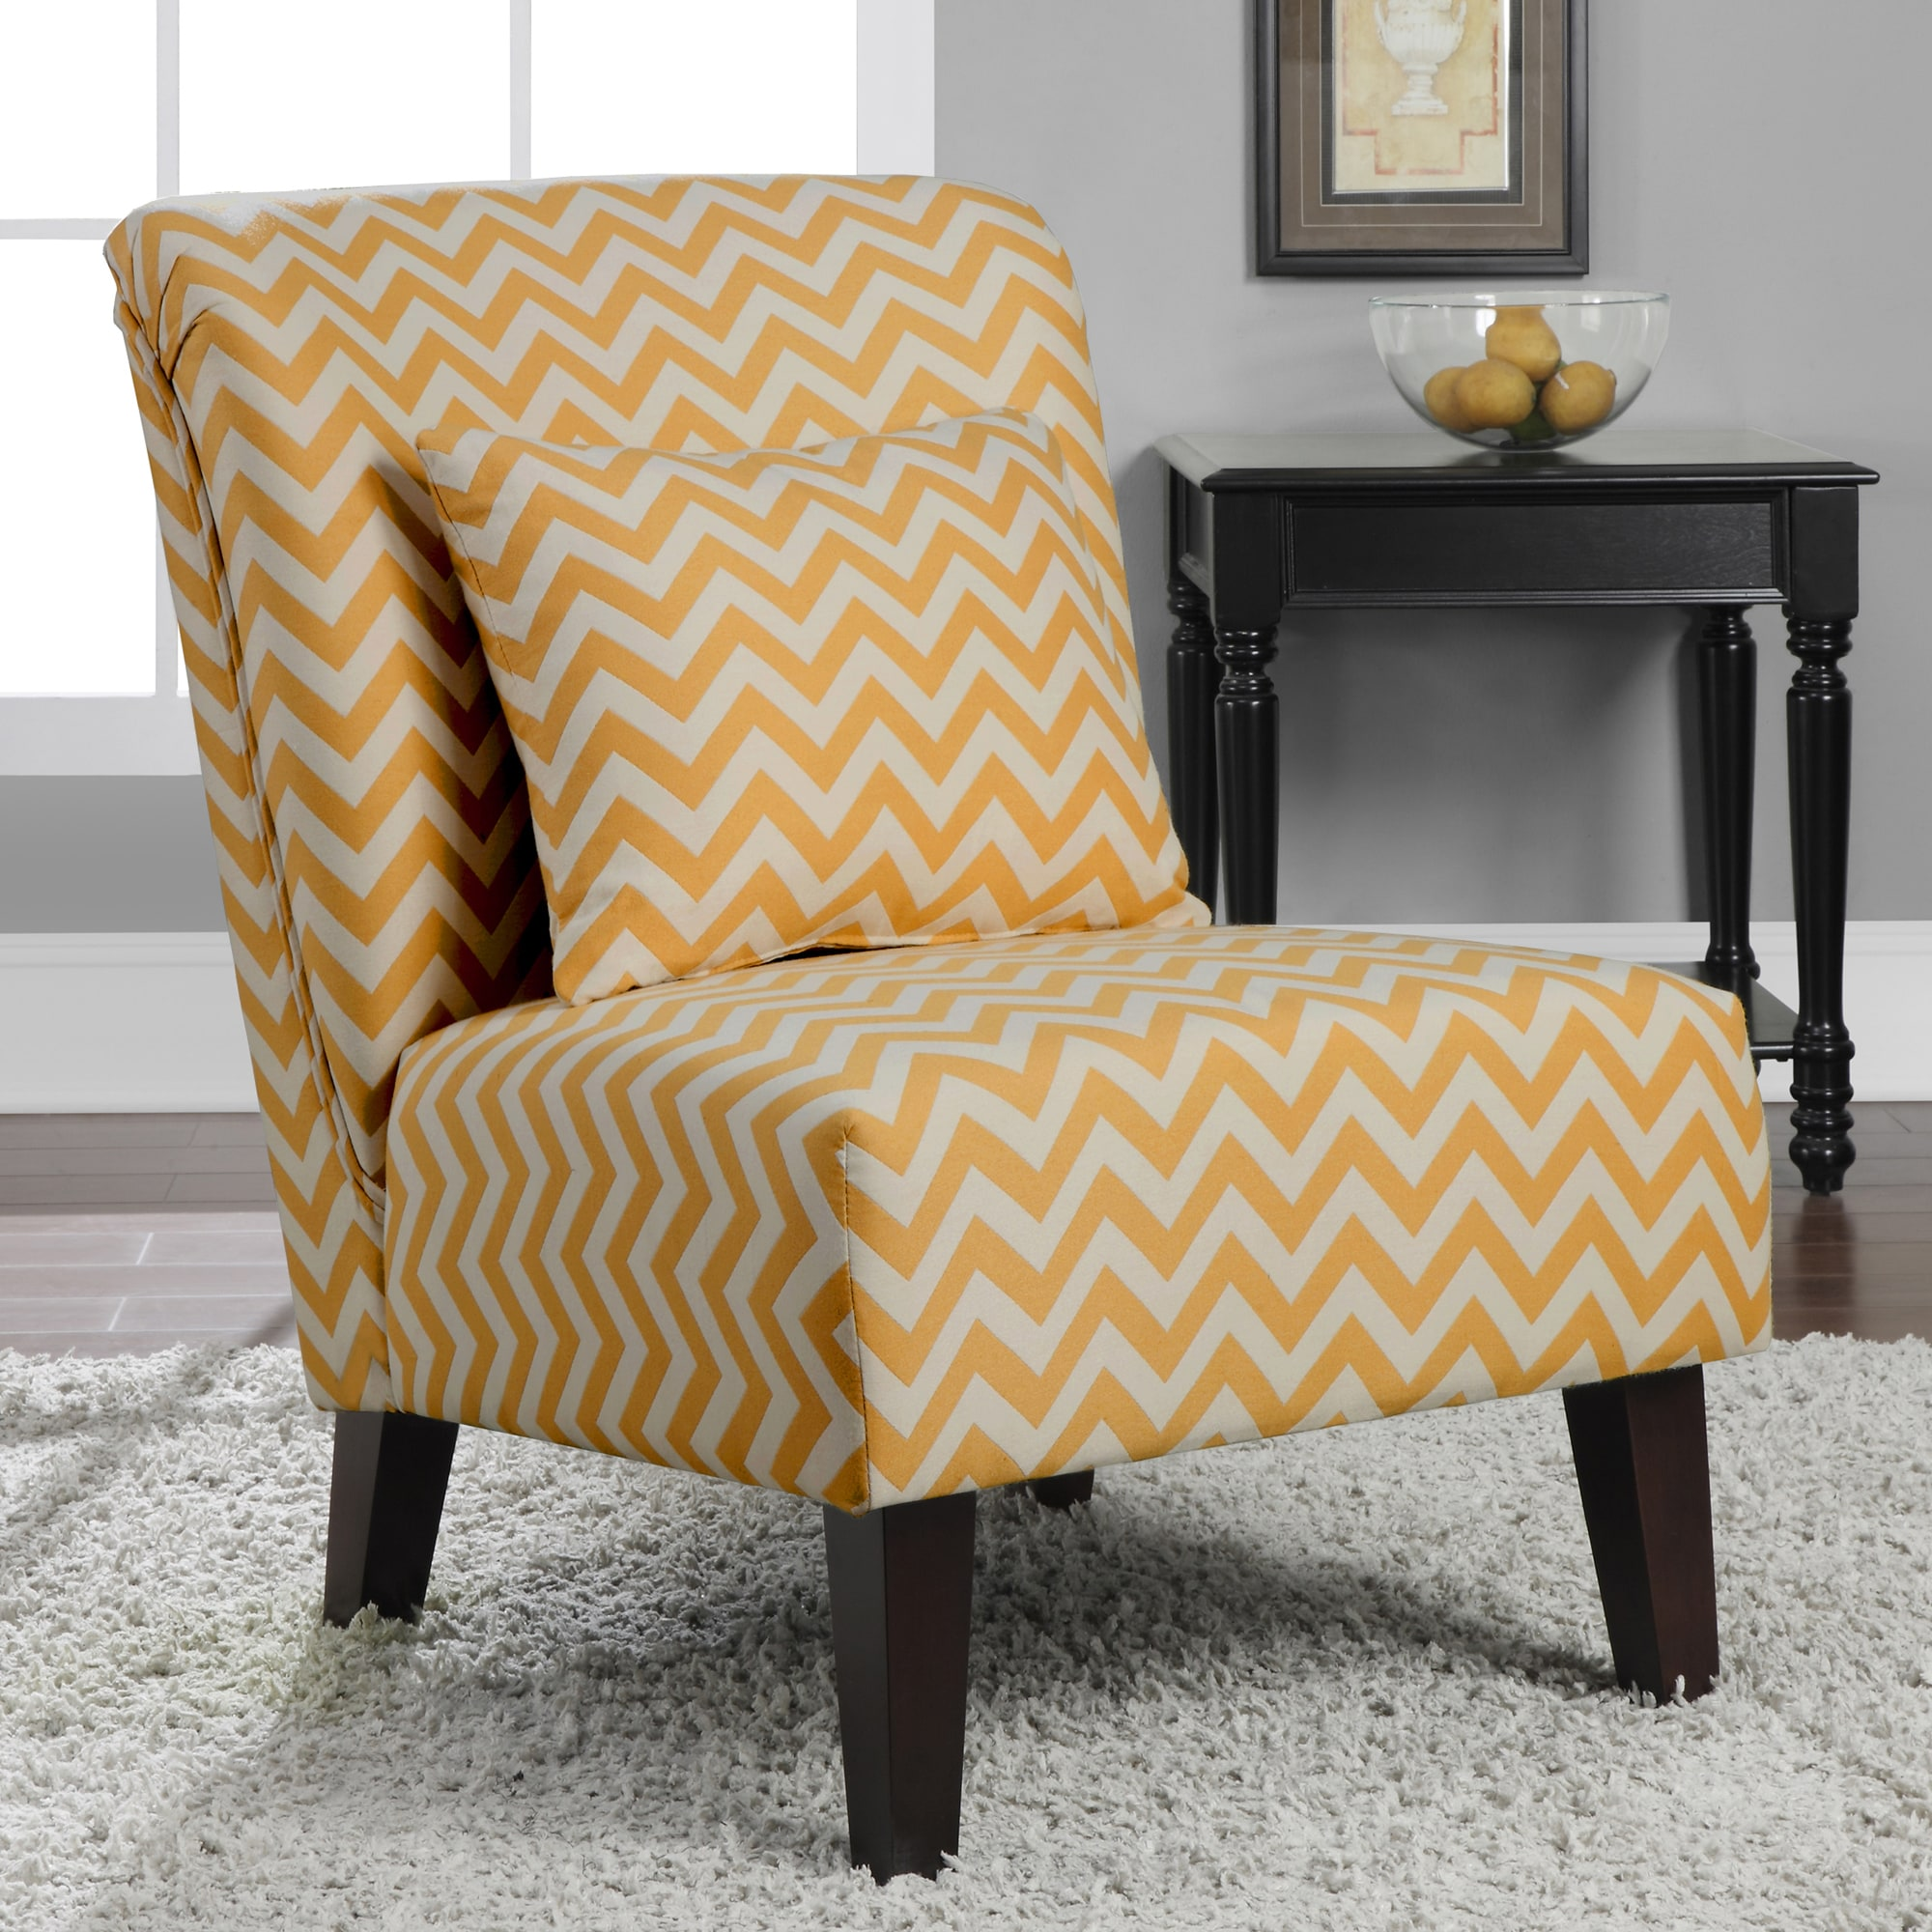 overstock com chairs beach at target anna french yellow chevron fabric accent chair